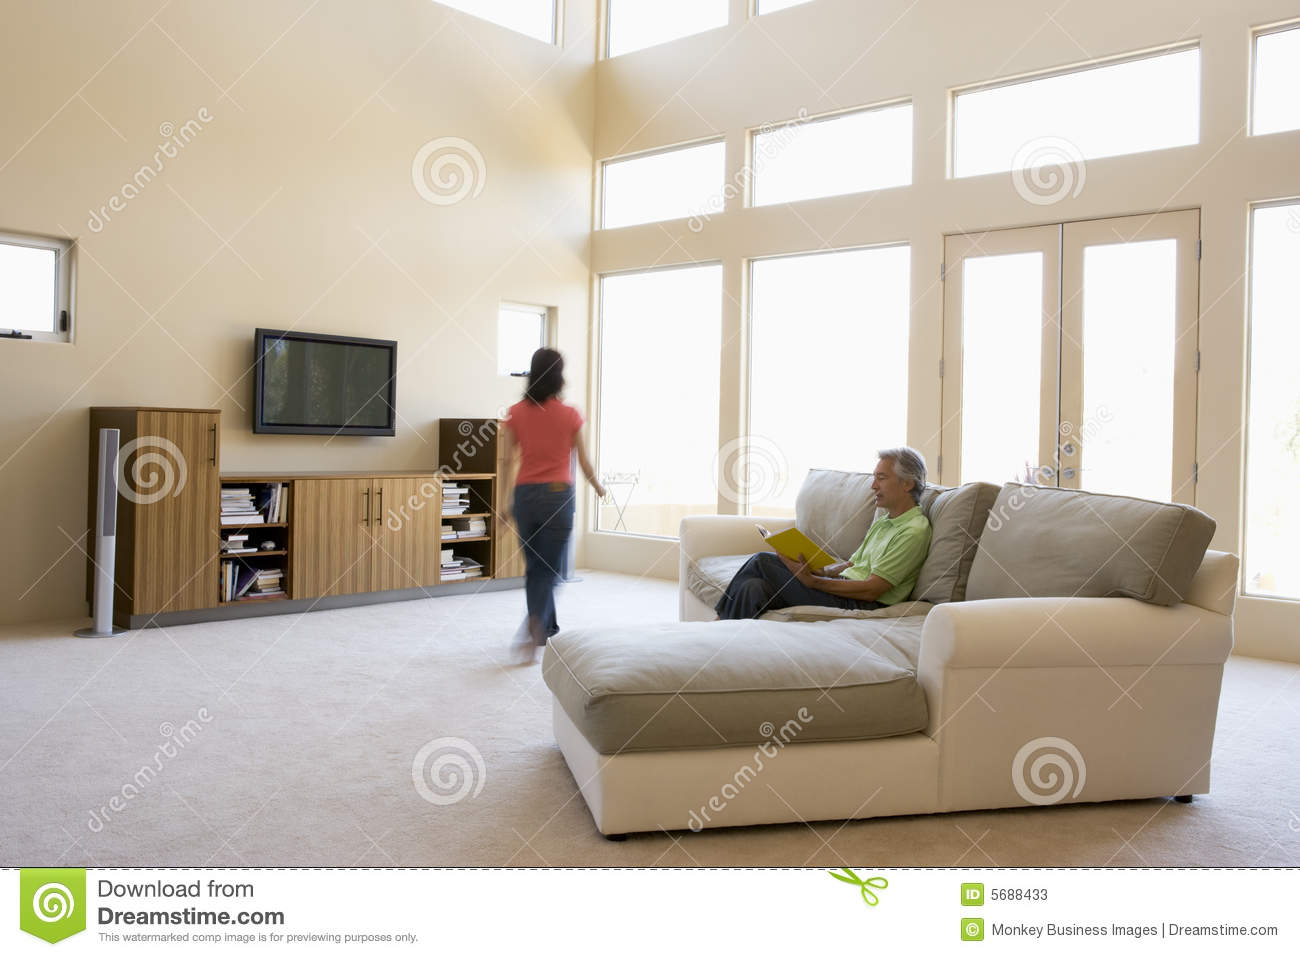 Man Living Room Man Reading Book In Living Room With Woman Walking Stock Photos